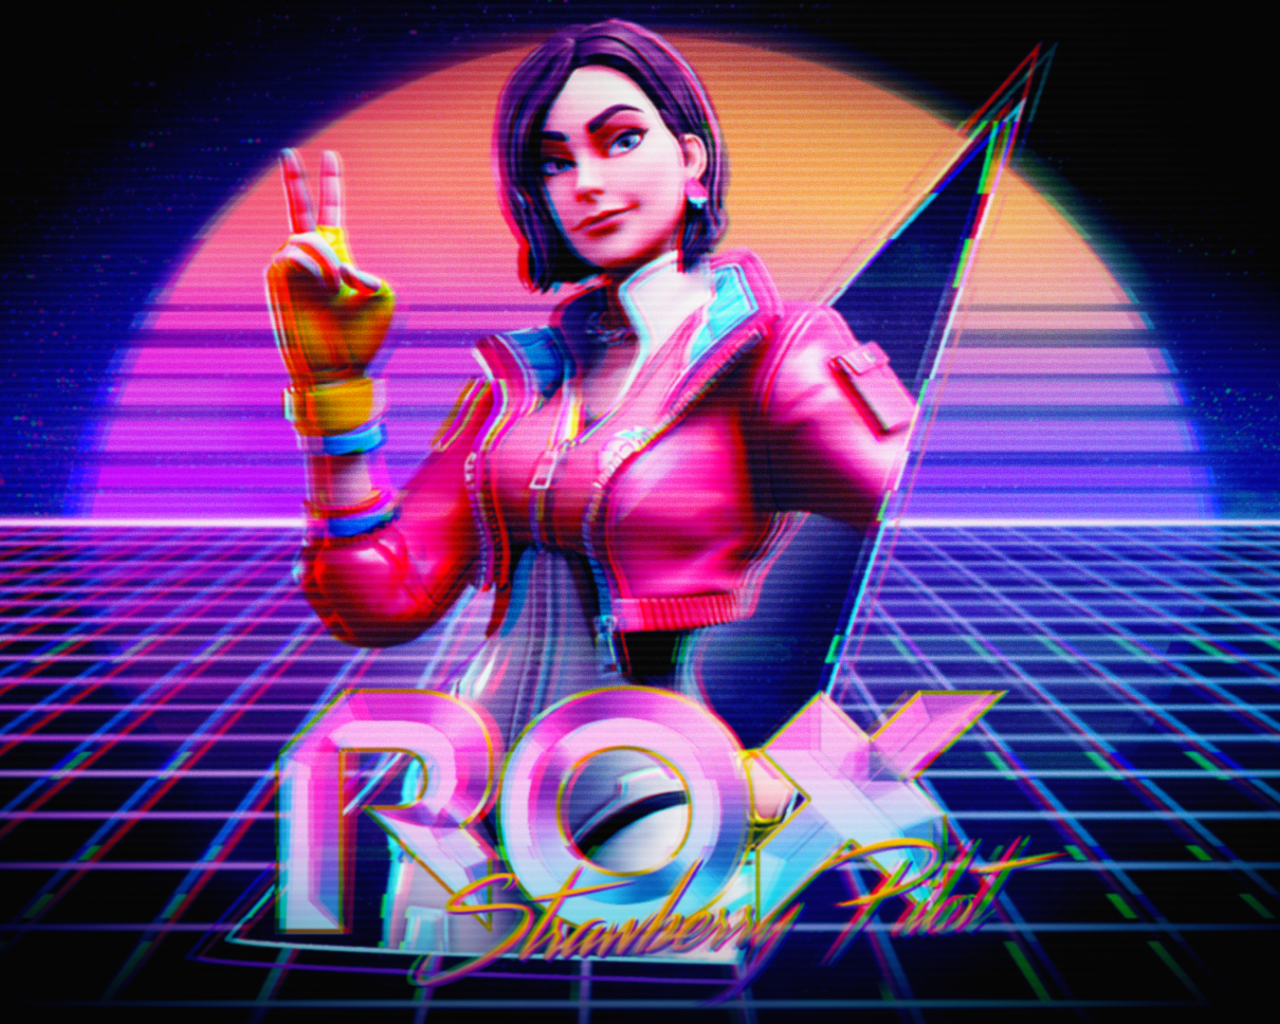 Free Download Inspired By The Neon Theme This Season I Made This Quick Wallpaper 1920x1080 For Your Desktop Mobile Tablet Explore 8 Rox Fortnite Wallpapers Rox Fortnite Wallpapers Fortnite